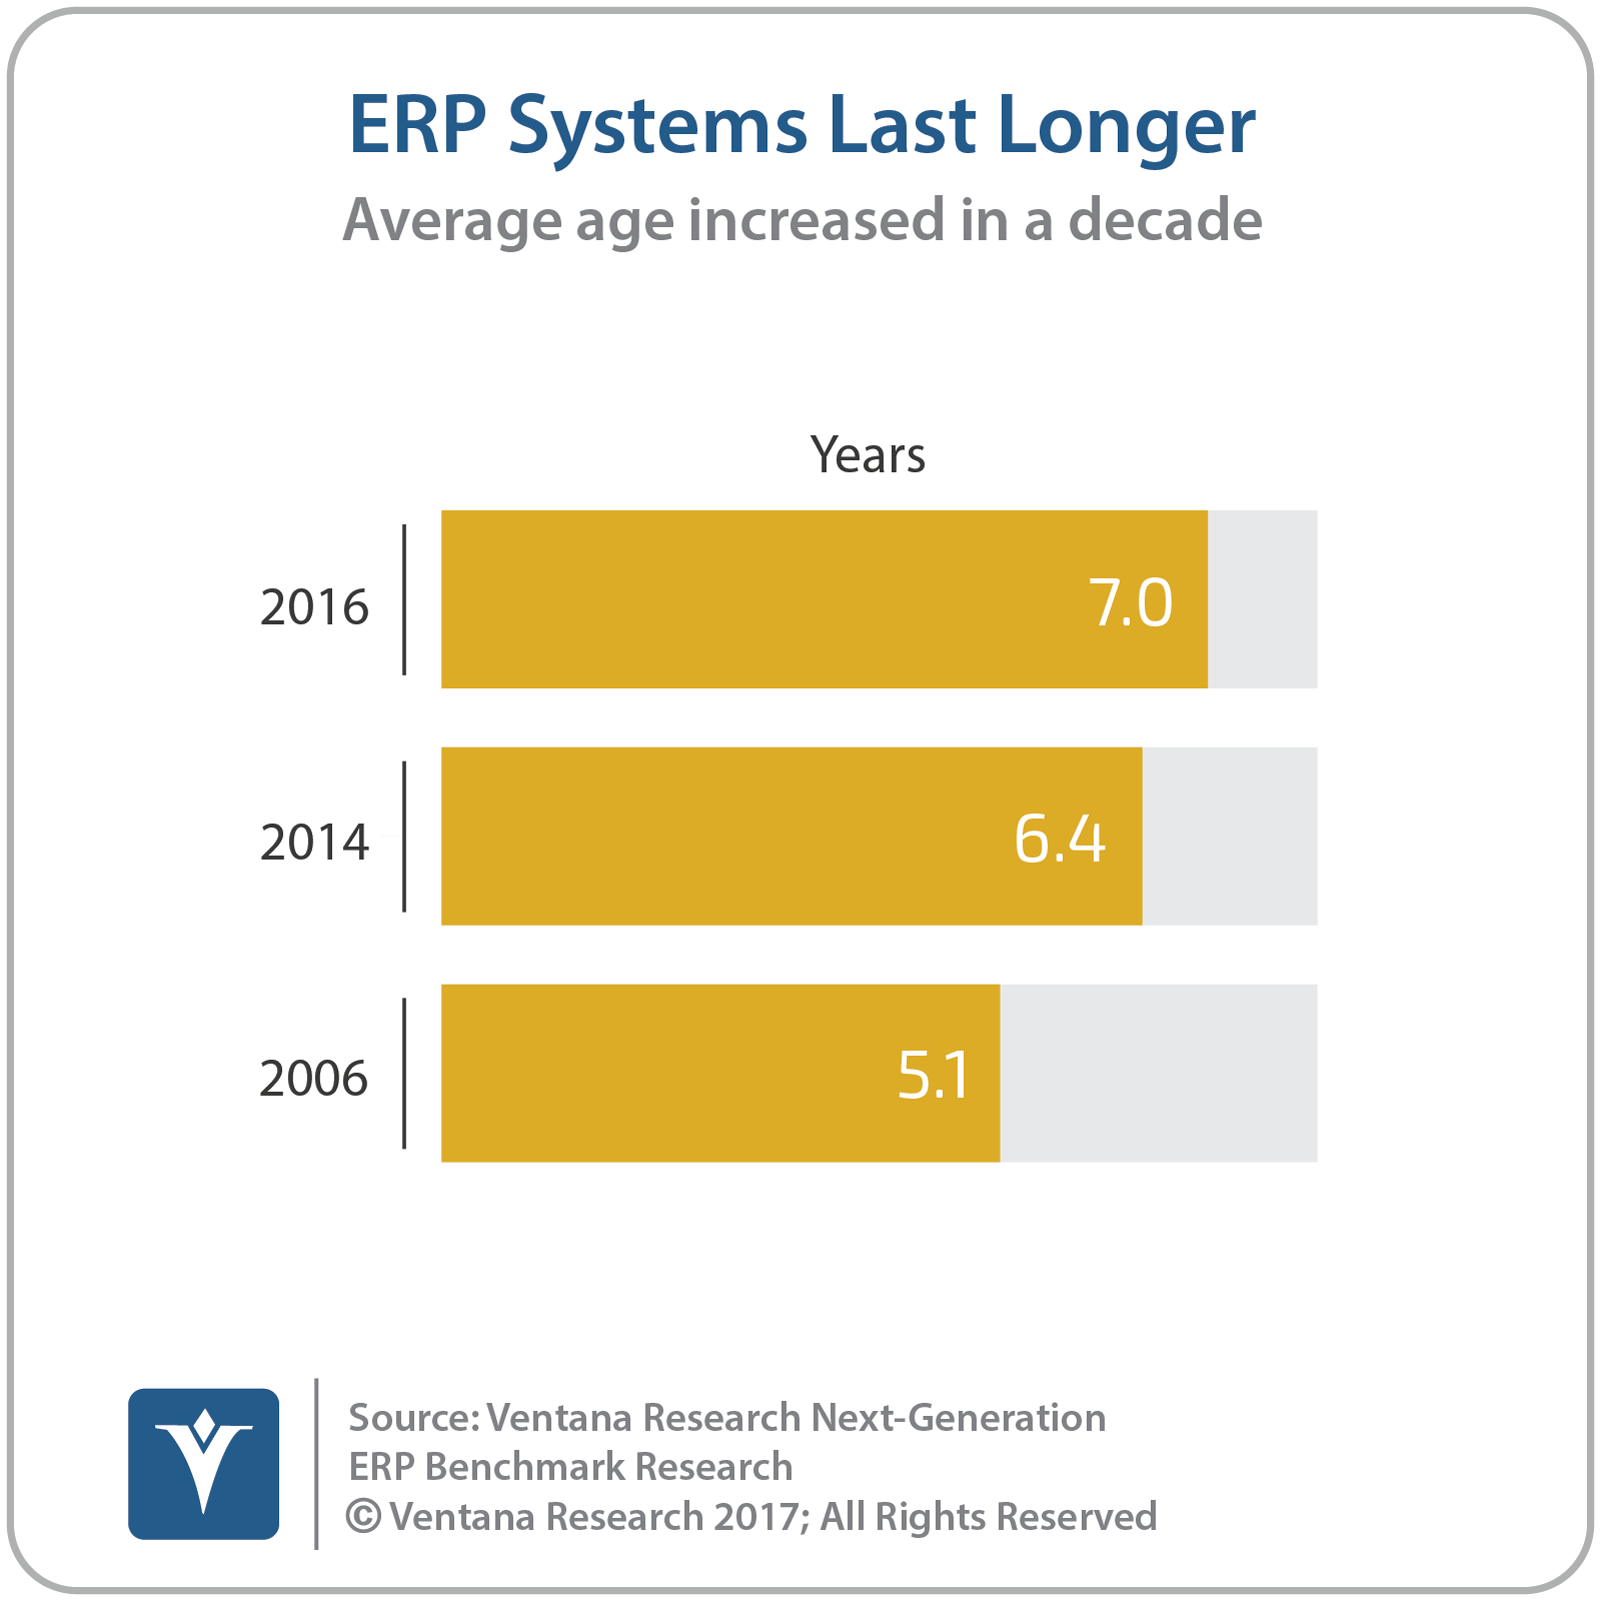 vr_NG_ERP_general_01_ERP_systems_last_longer-1.png